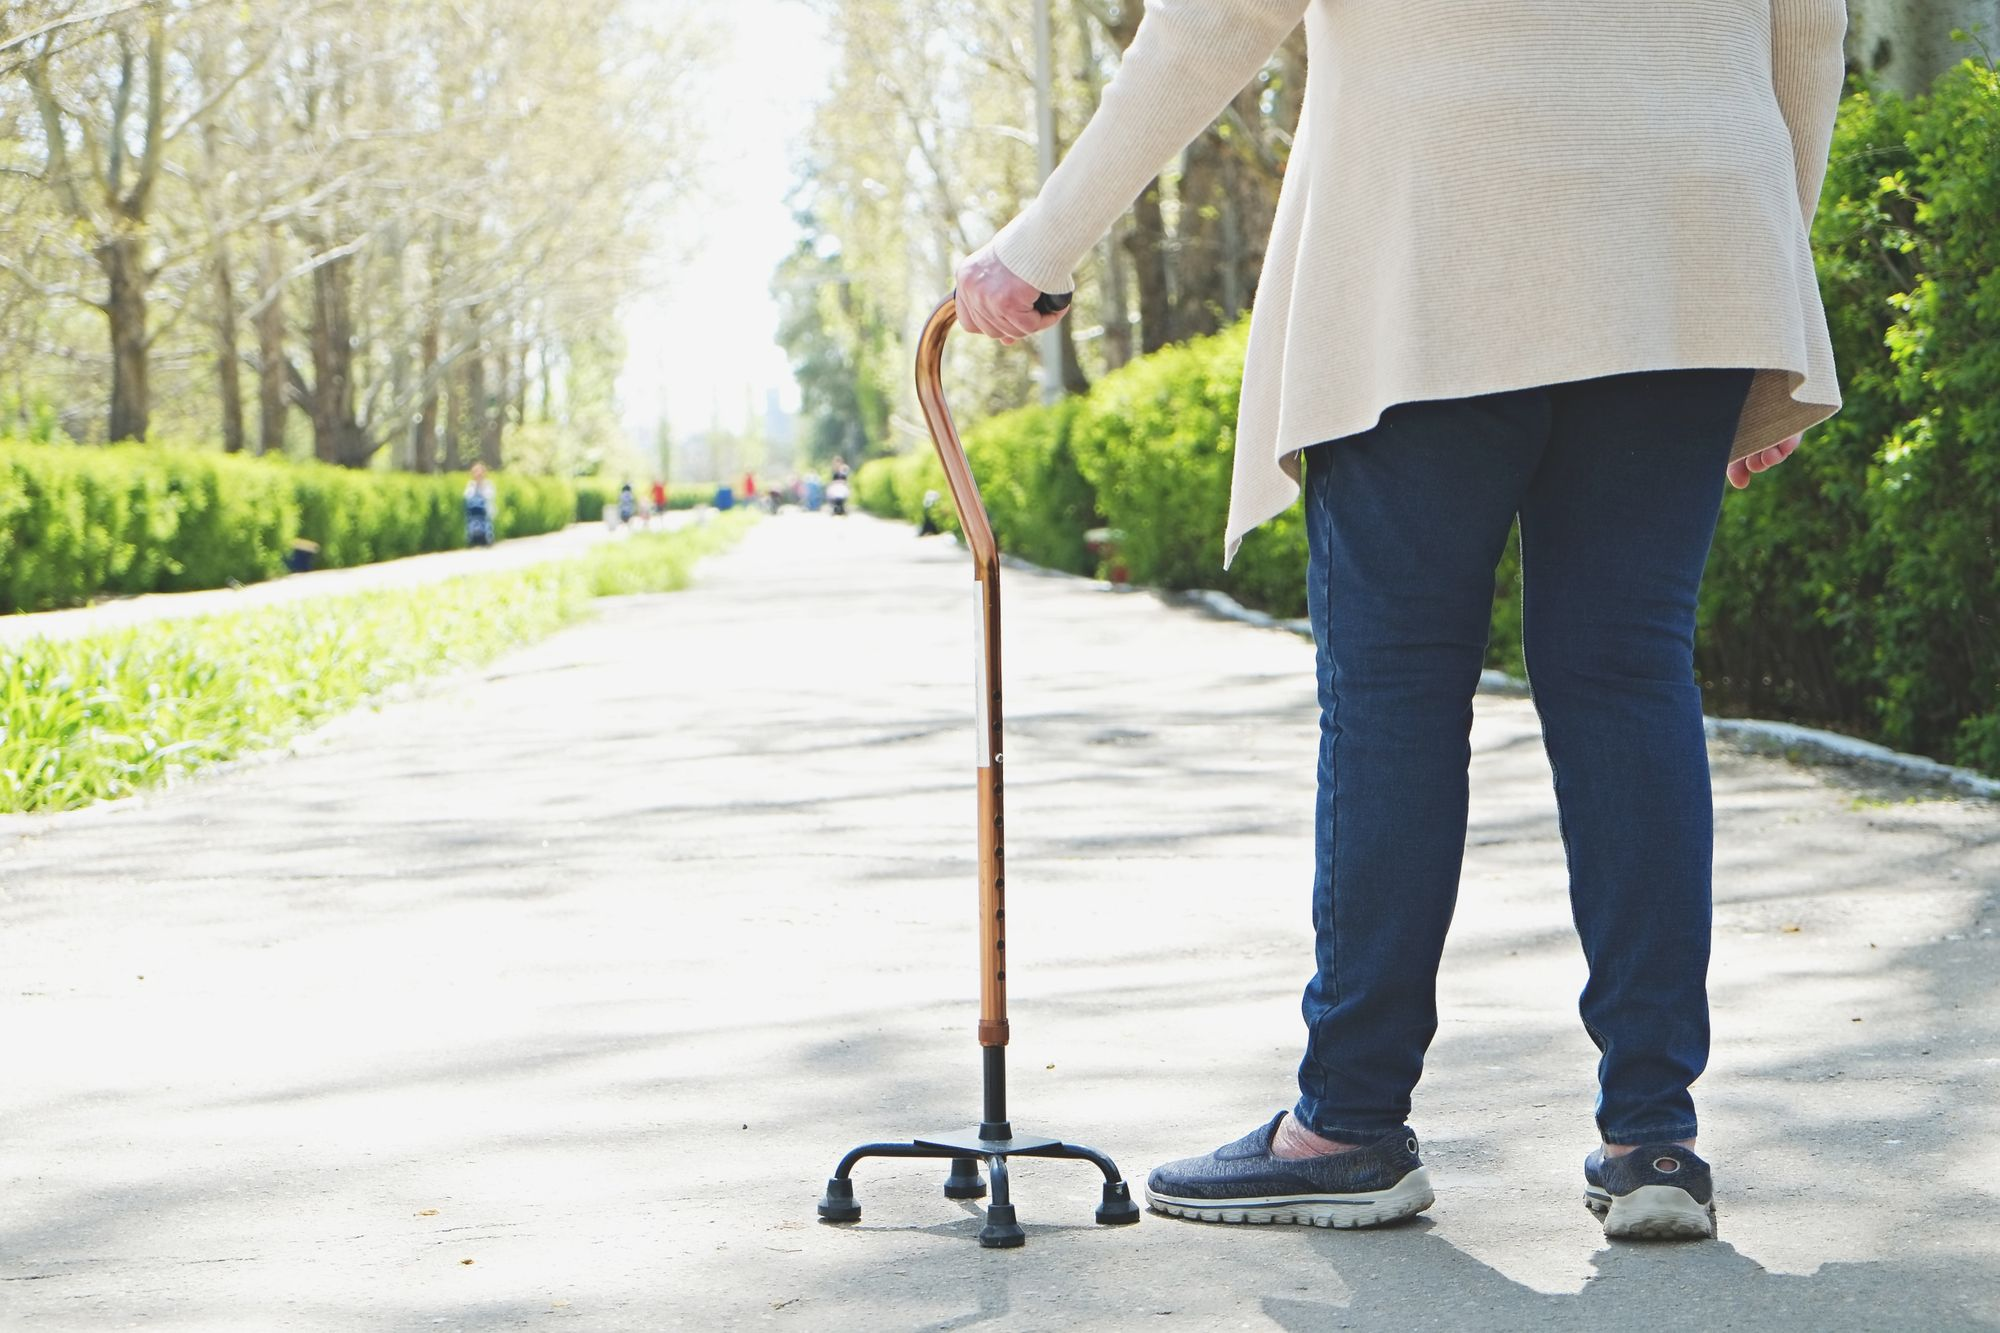 Walking After Stroke: 7 Exercises to Improve Strength and Balance